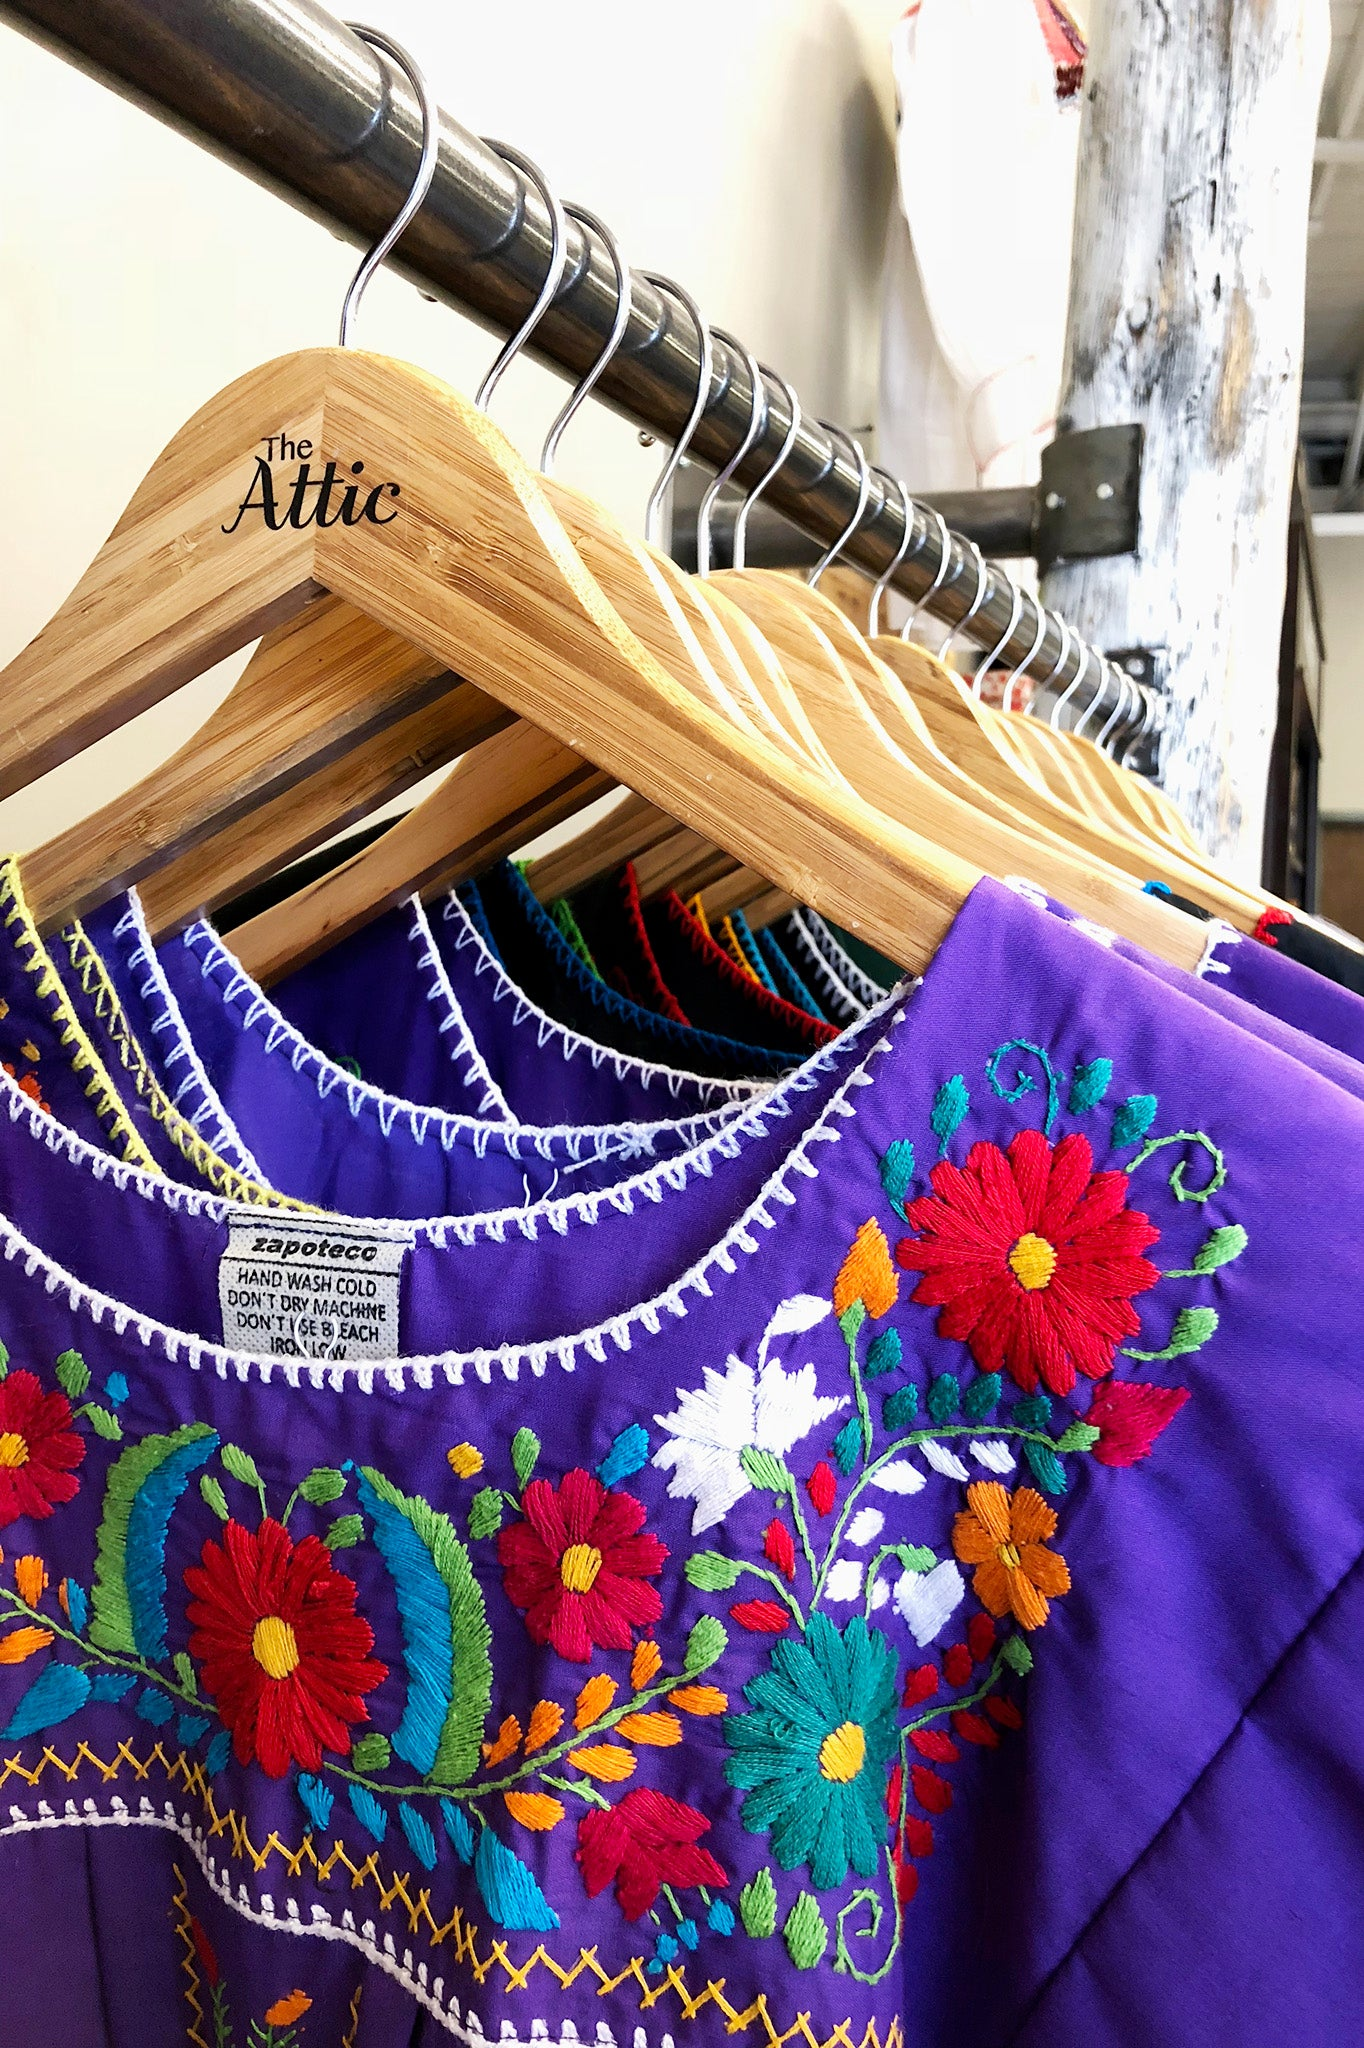 Shop Mucho At The Attic On Overton Square In Midtown Memphis